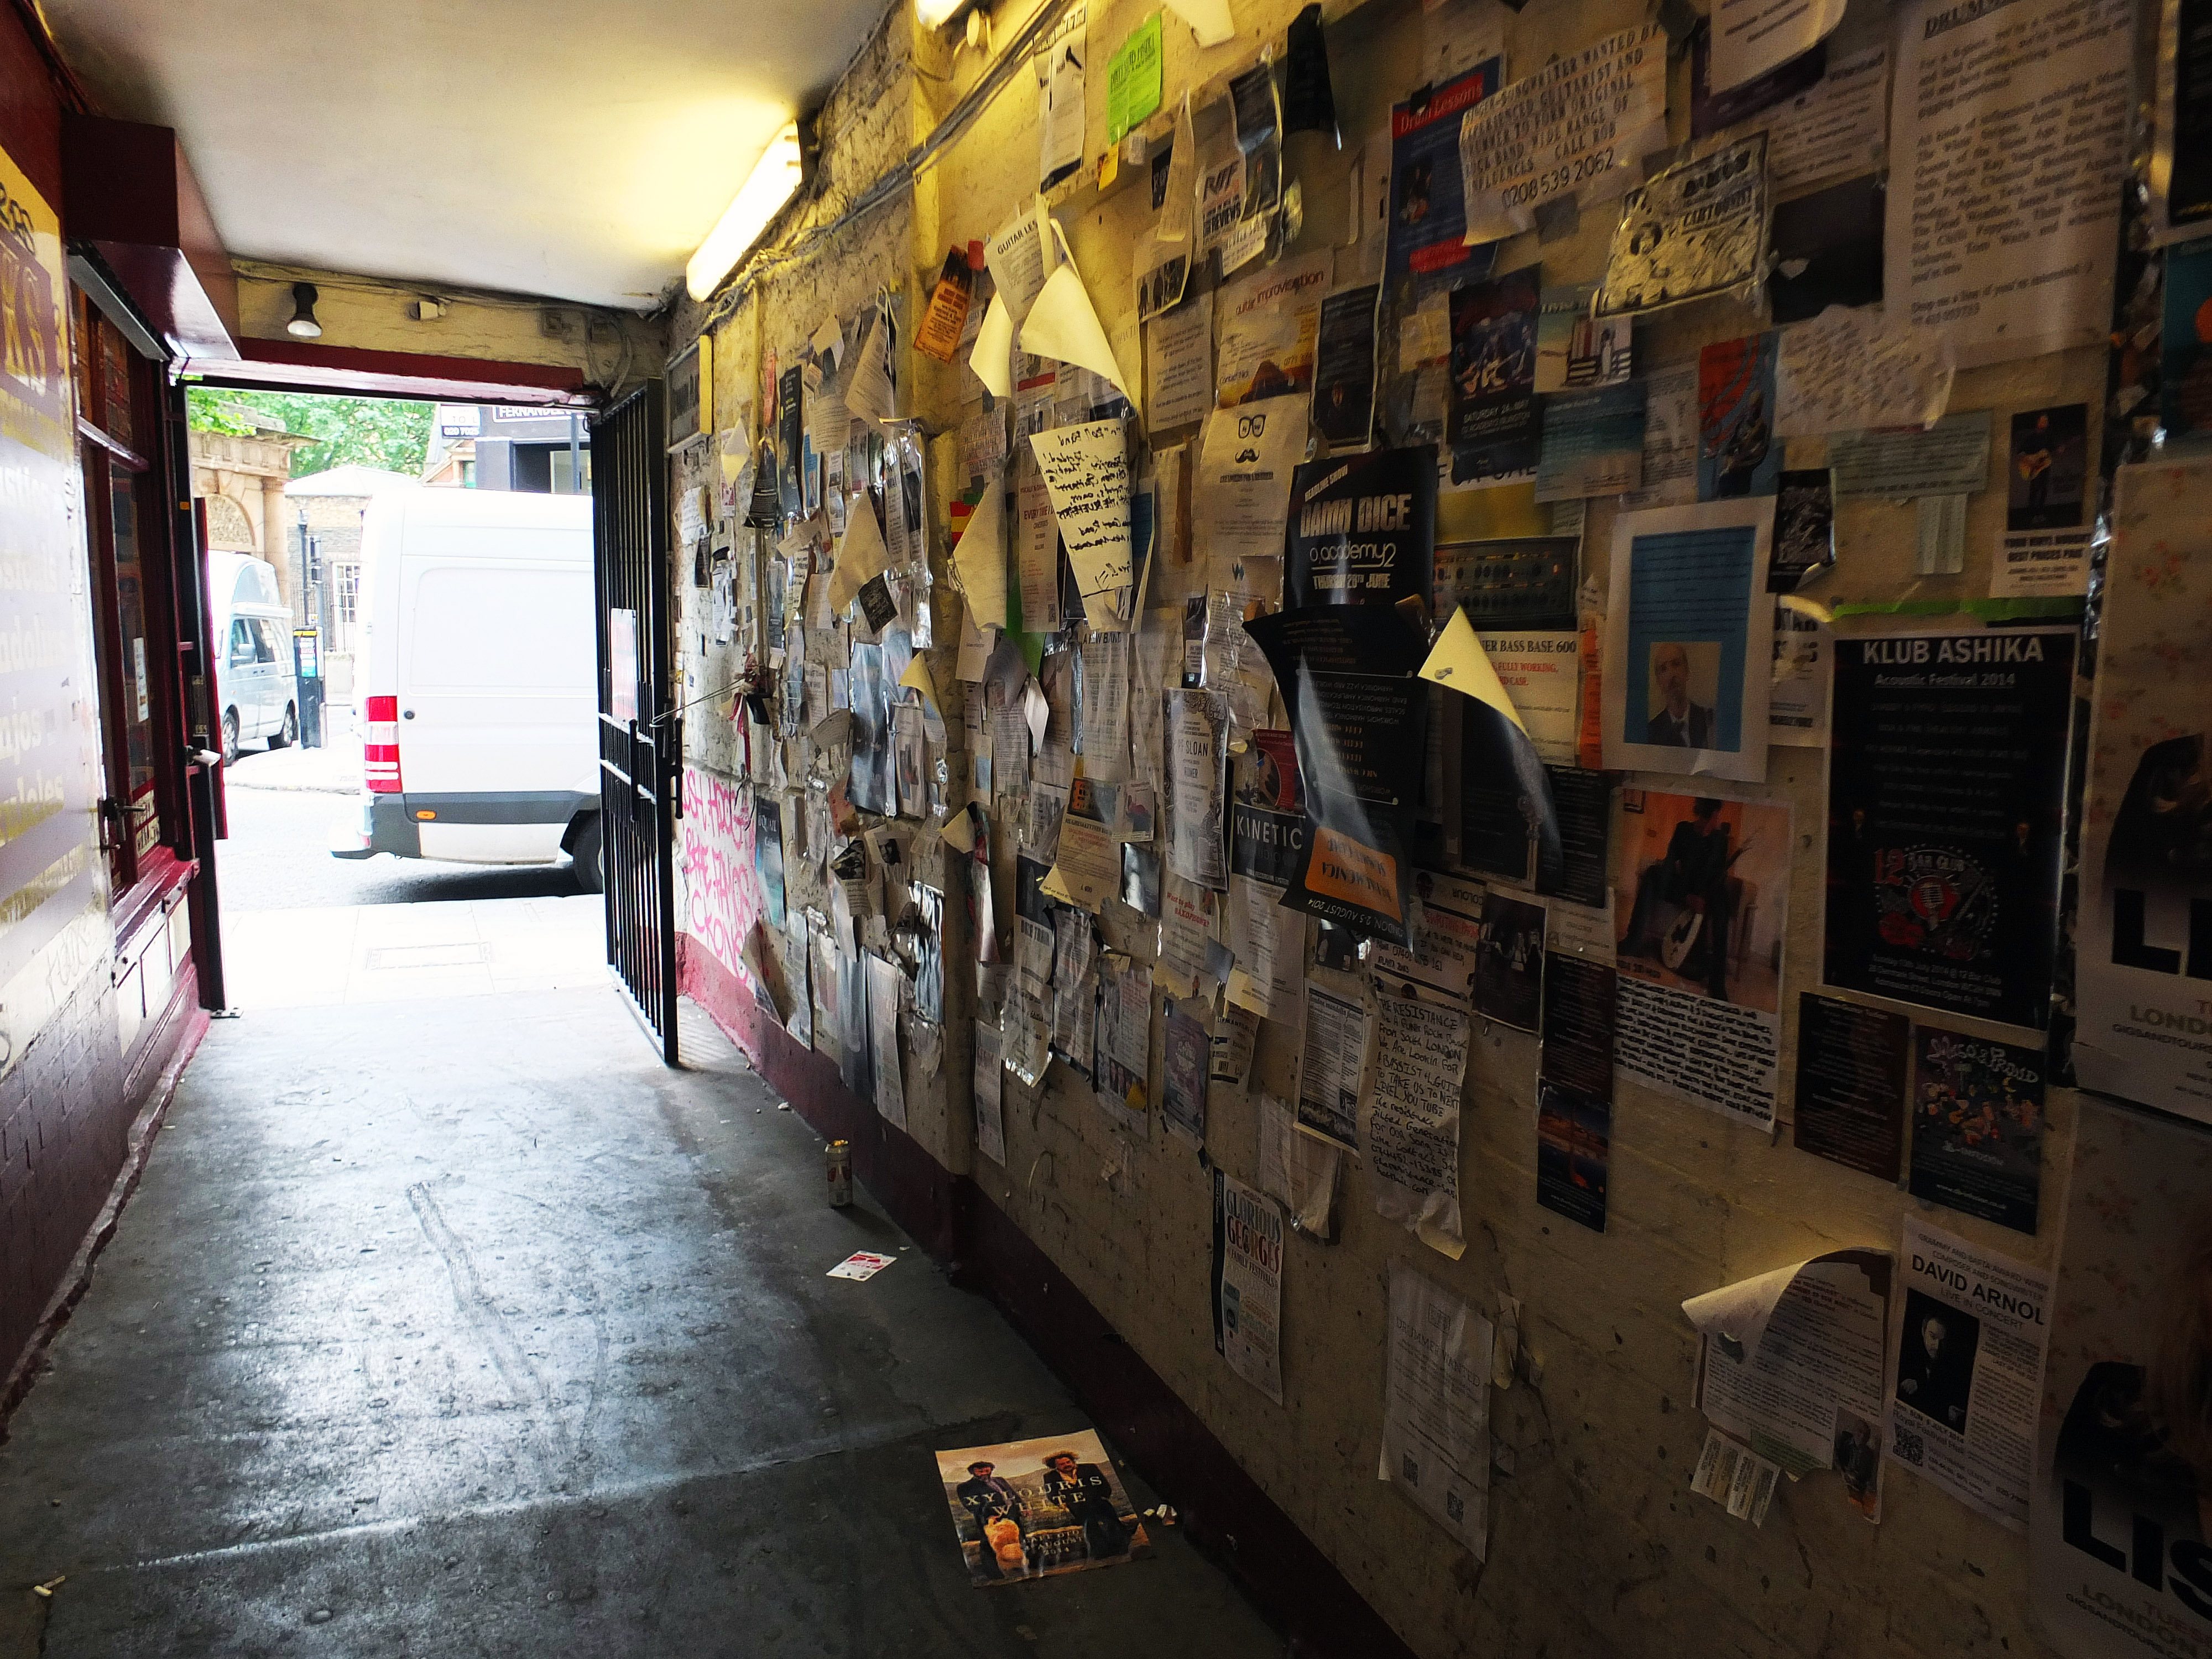 Denmark Place off of Denmark Street... an alley plastered with band adverts and musician requests